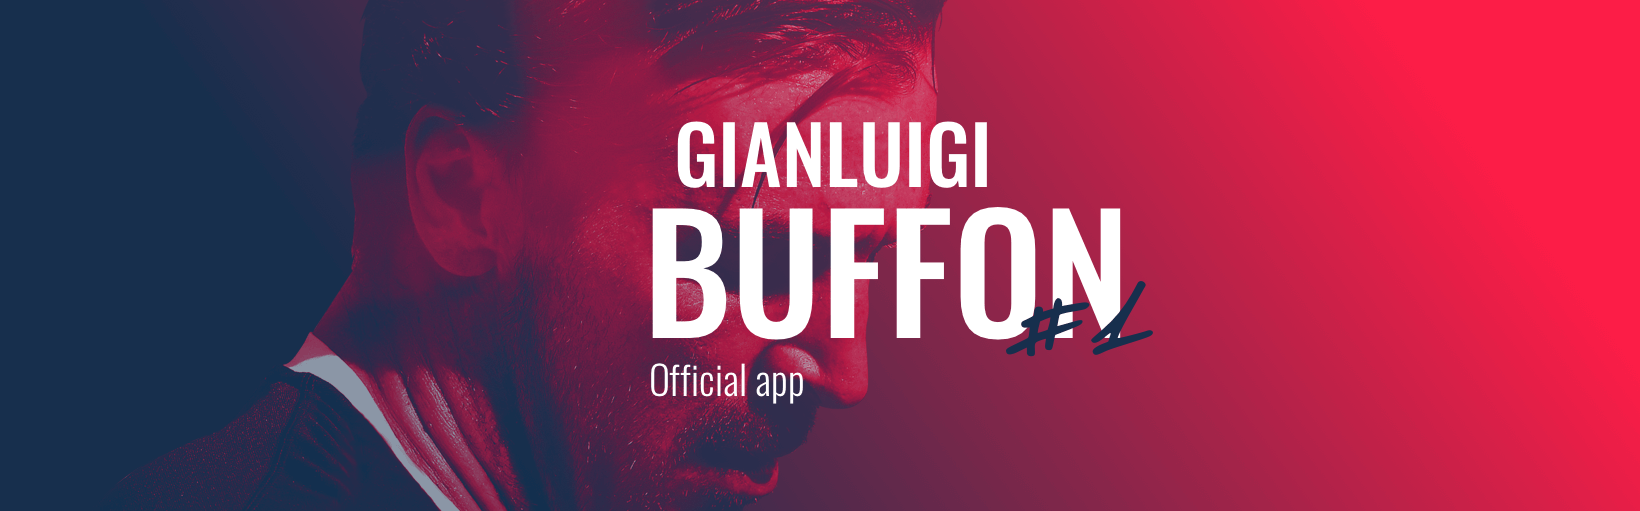 Gianluigi Buffon Official App